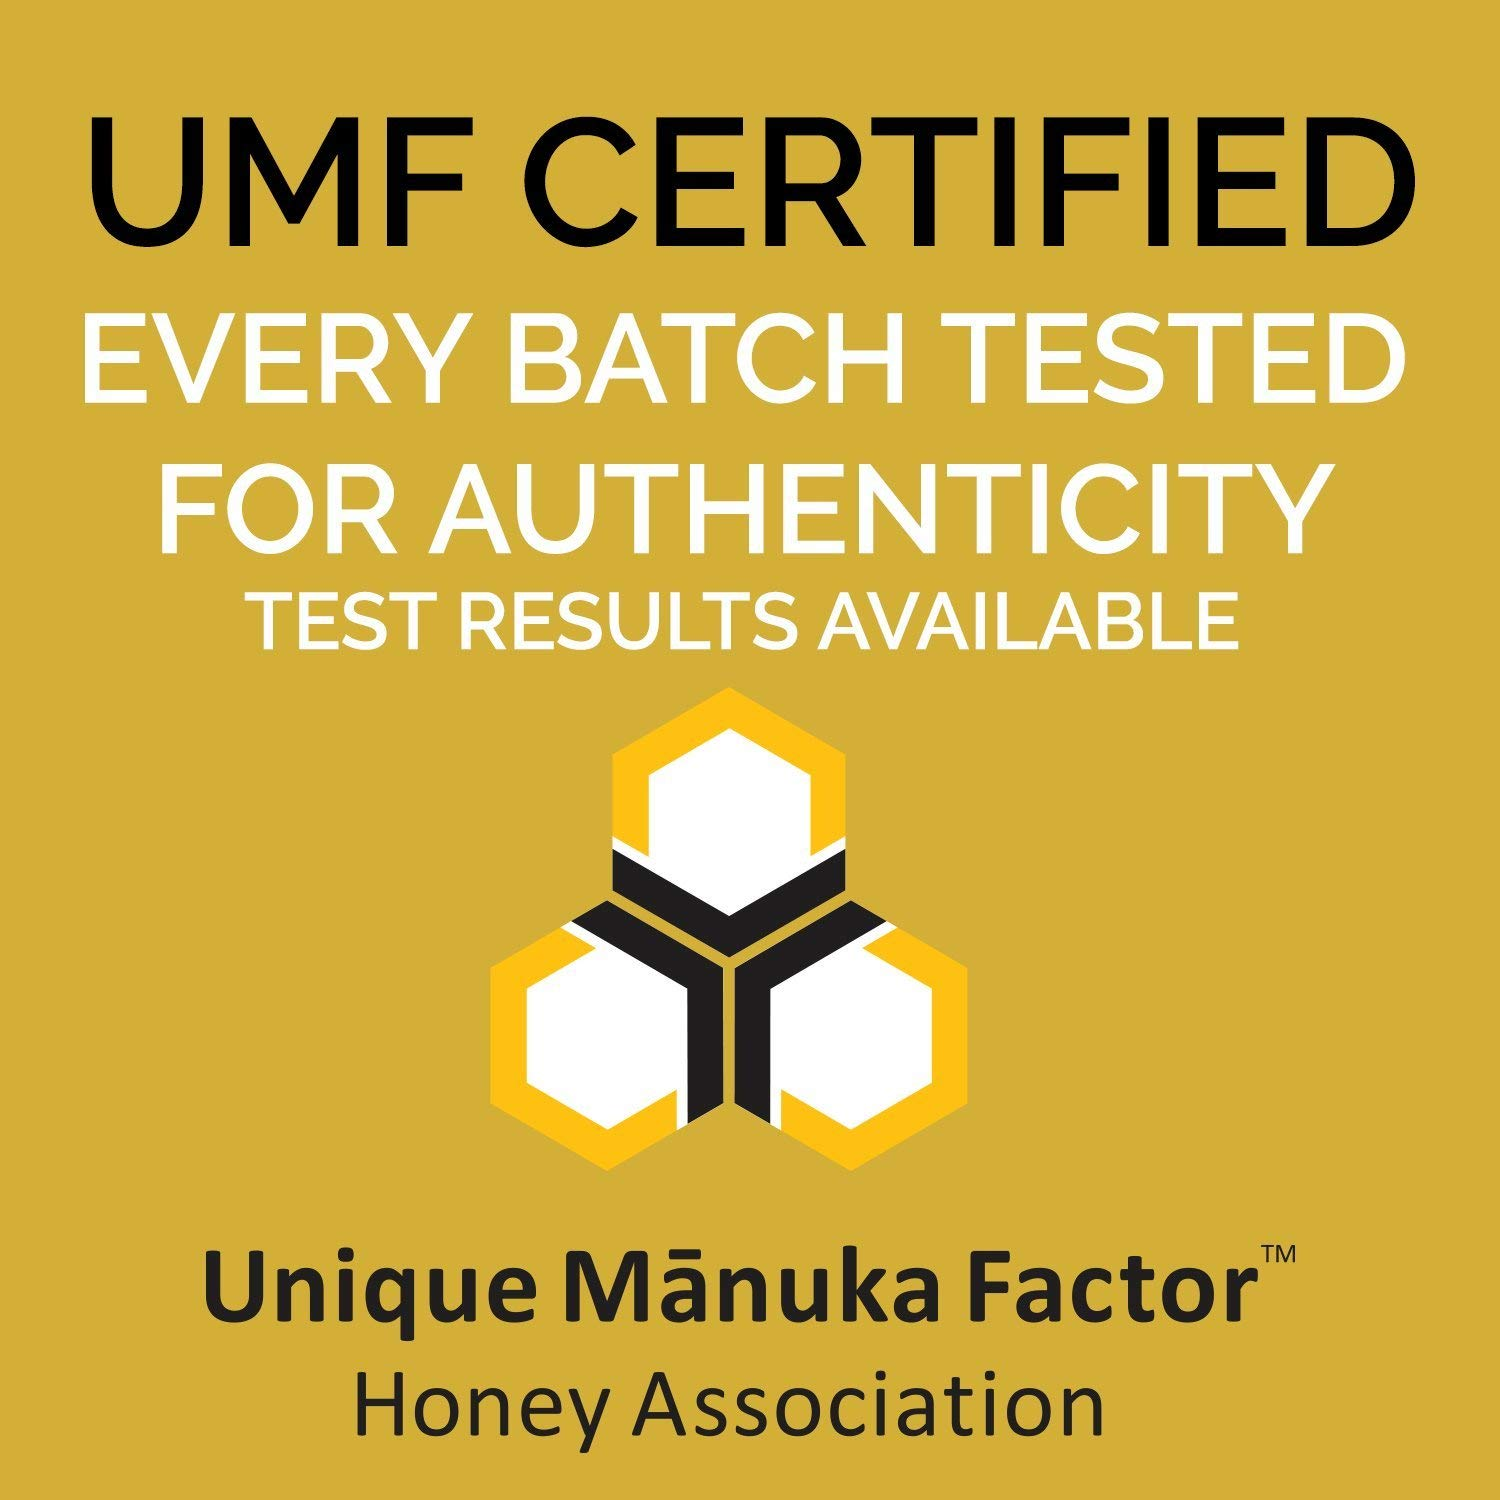 Manukora UMF 15+/MGO 500+ Raw Mānuka Honey (250g/8.8oz) Authentic Non-GMO New Zealand Honey, UMF & MGO Certified, Traceable from Hive to Hand by Manukora (Image #7)